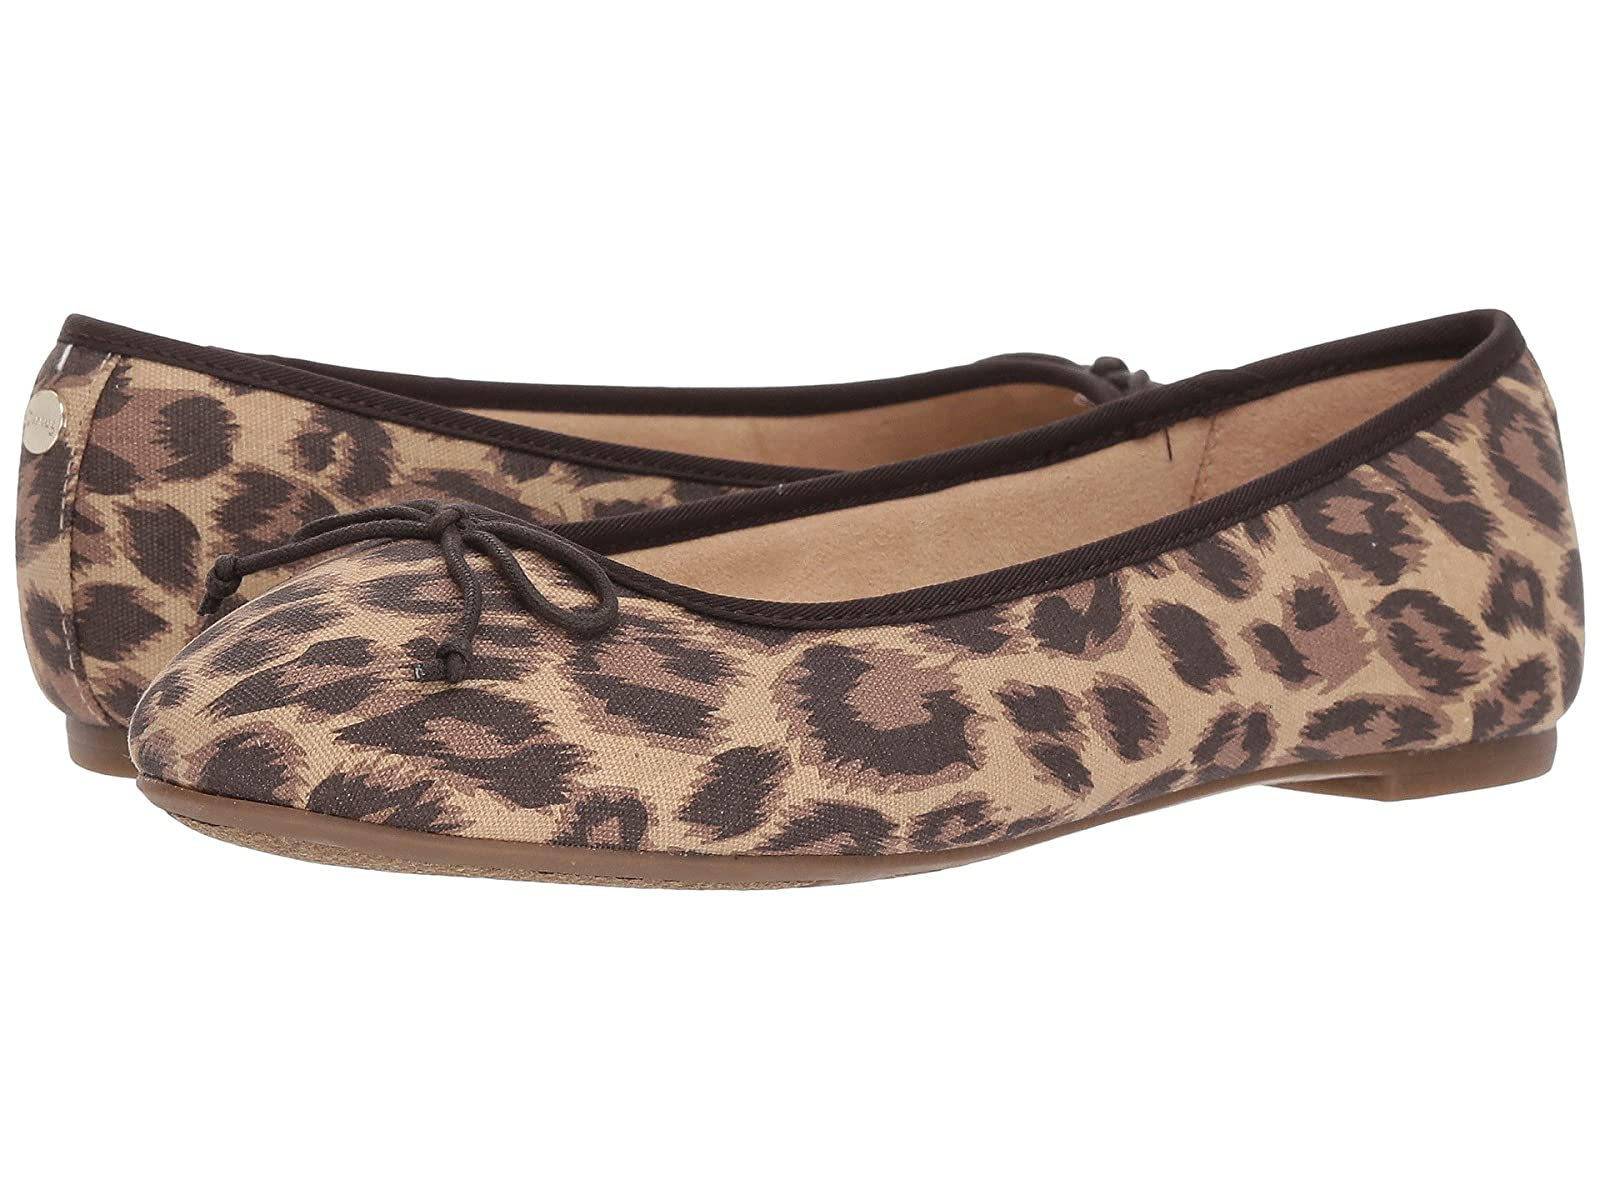 Circus by Sam Edelman CharlotteAtmospheric grades have affordable shoes